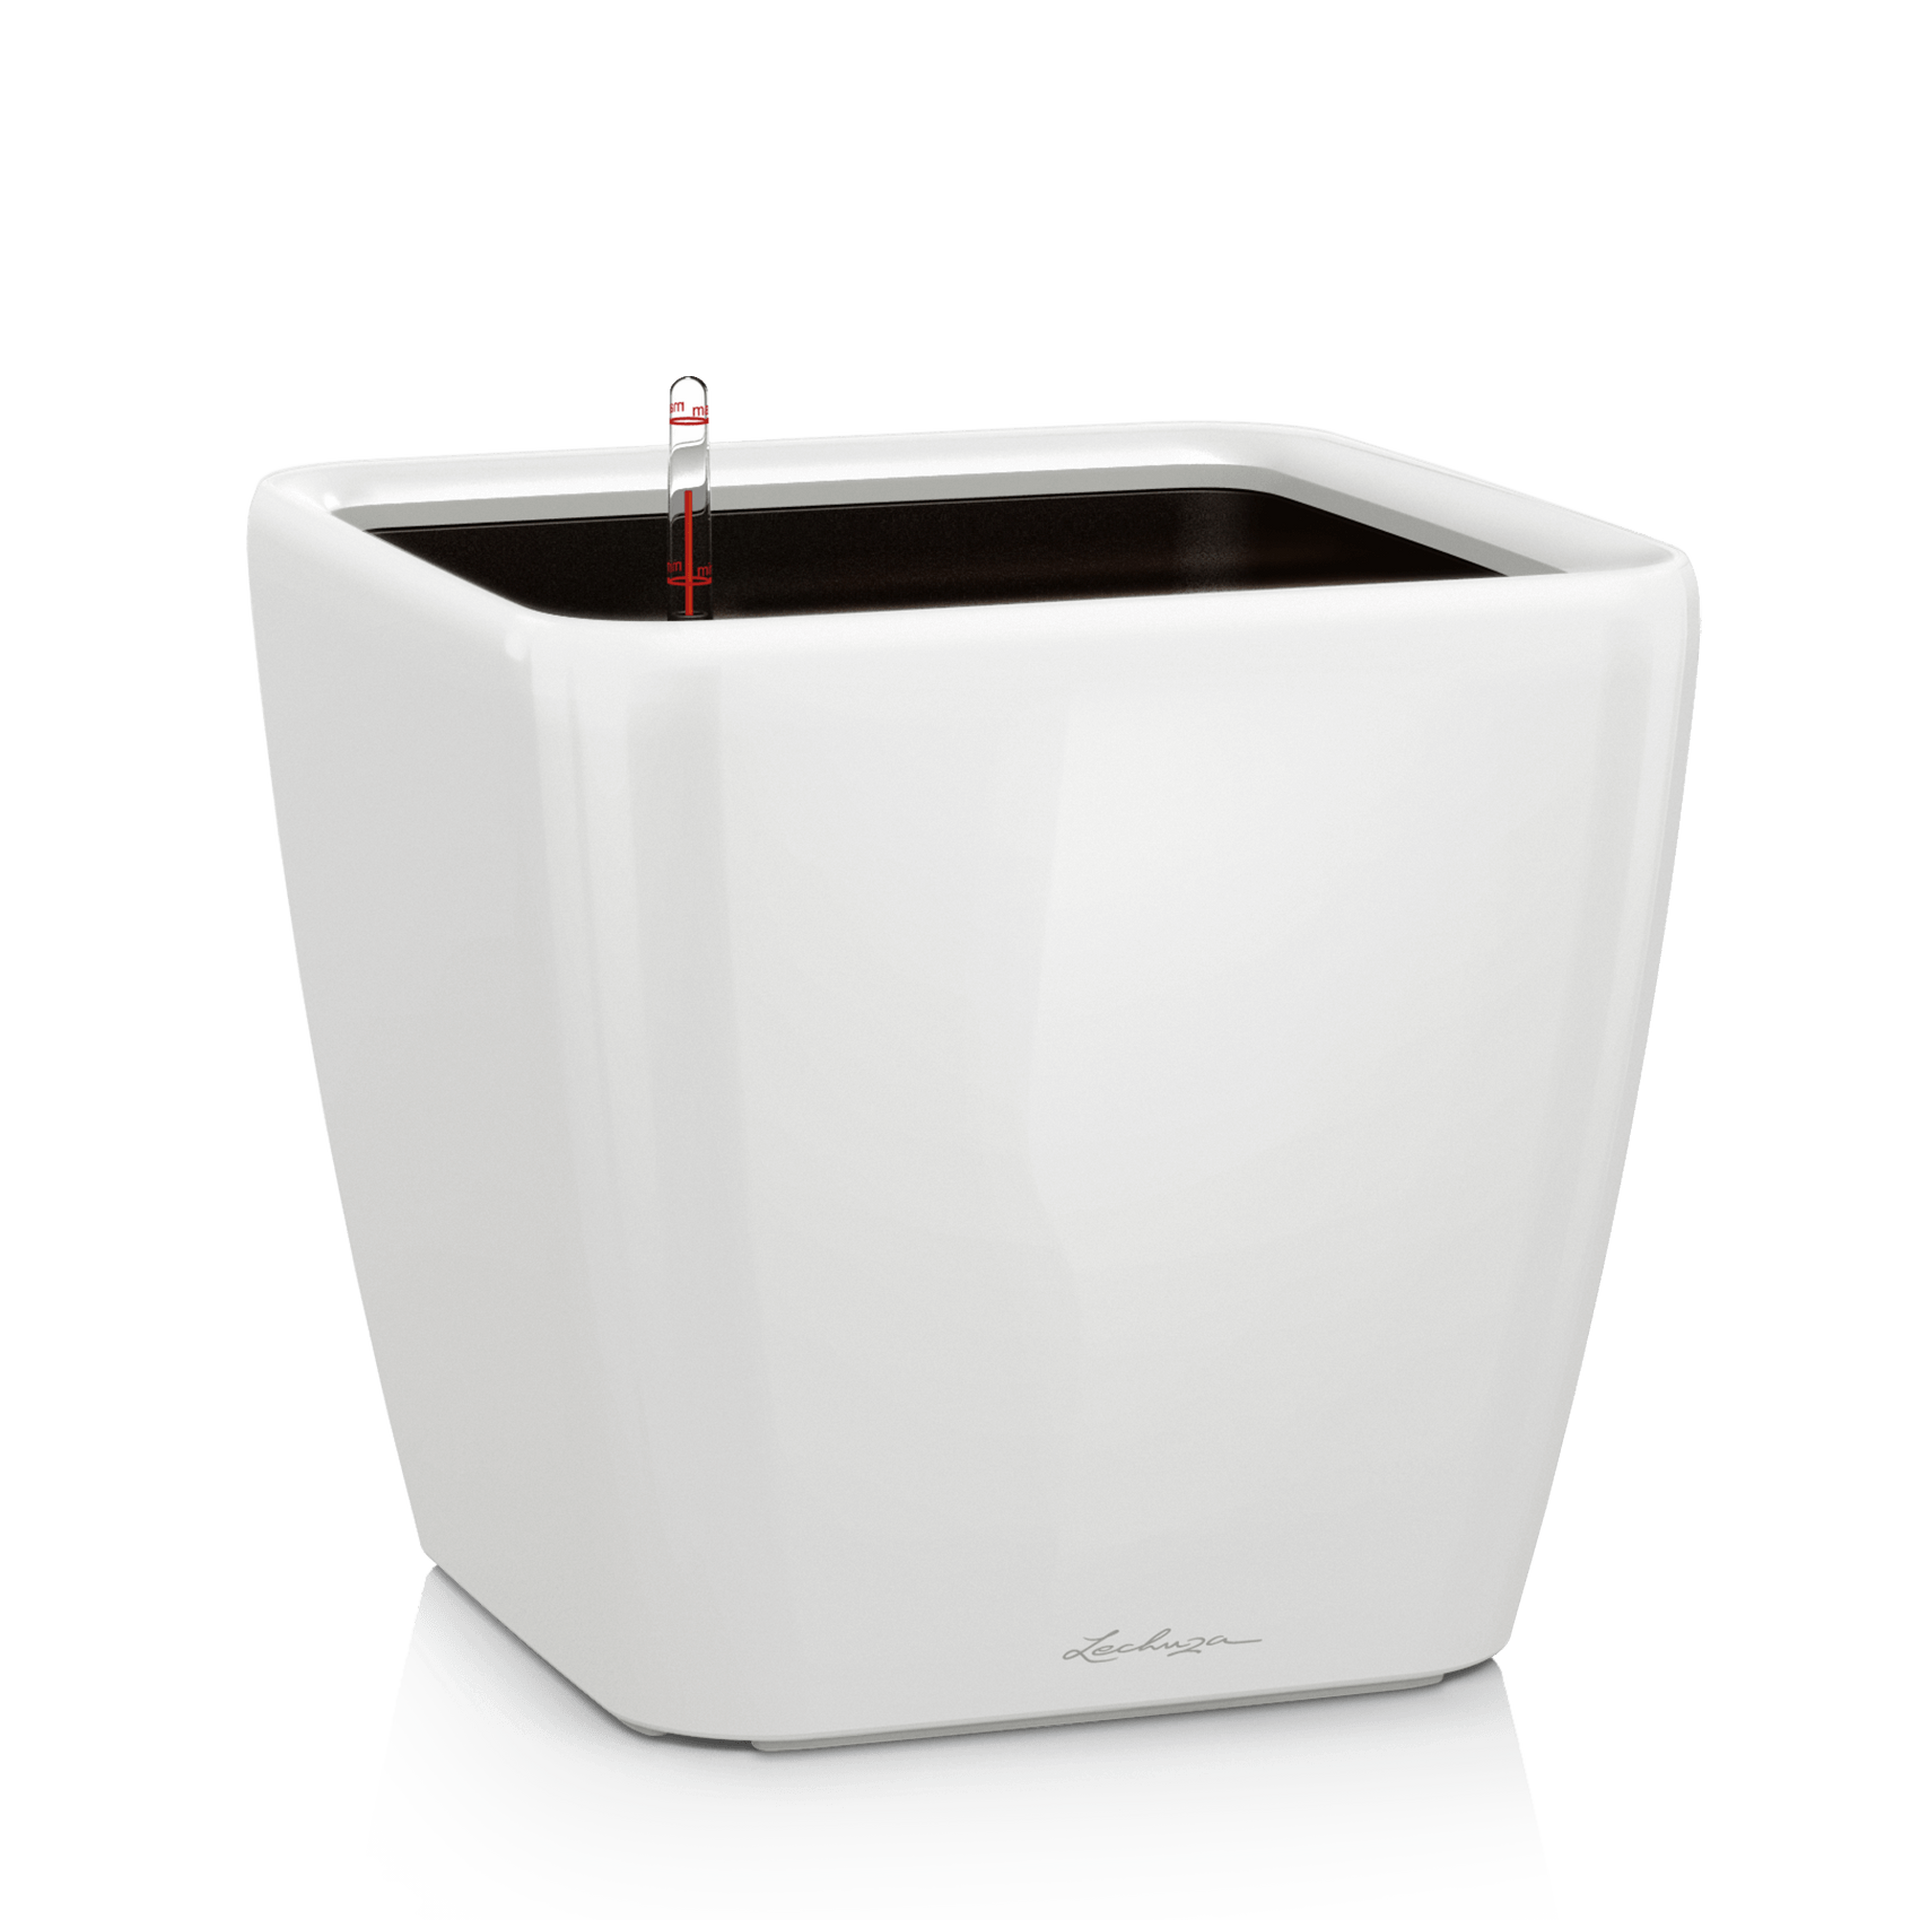 QUADRO LS 50 white high-gloss